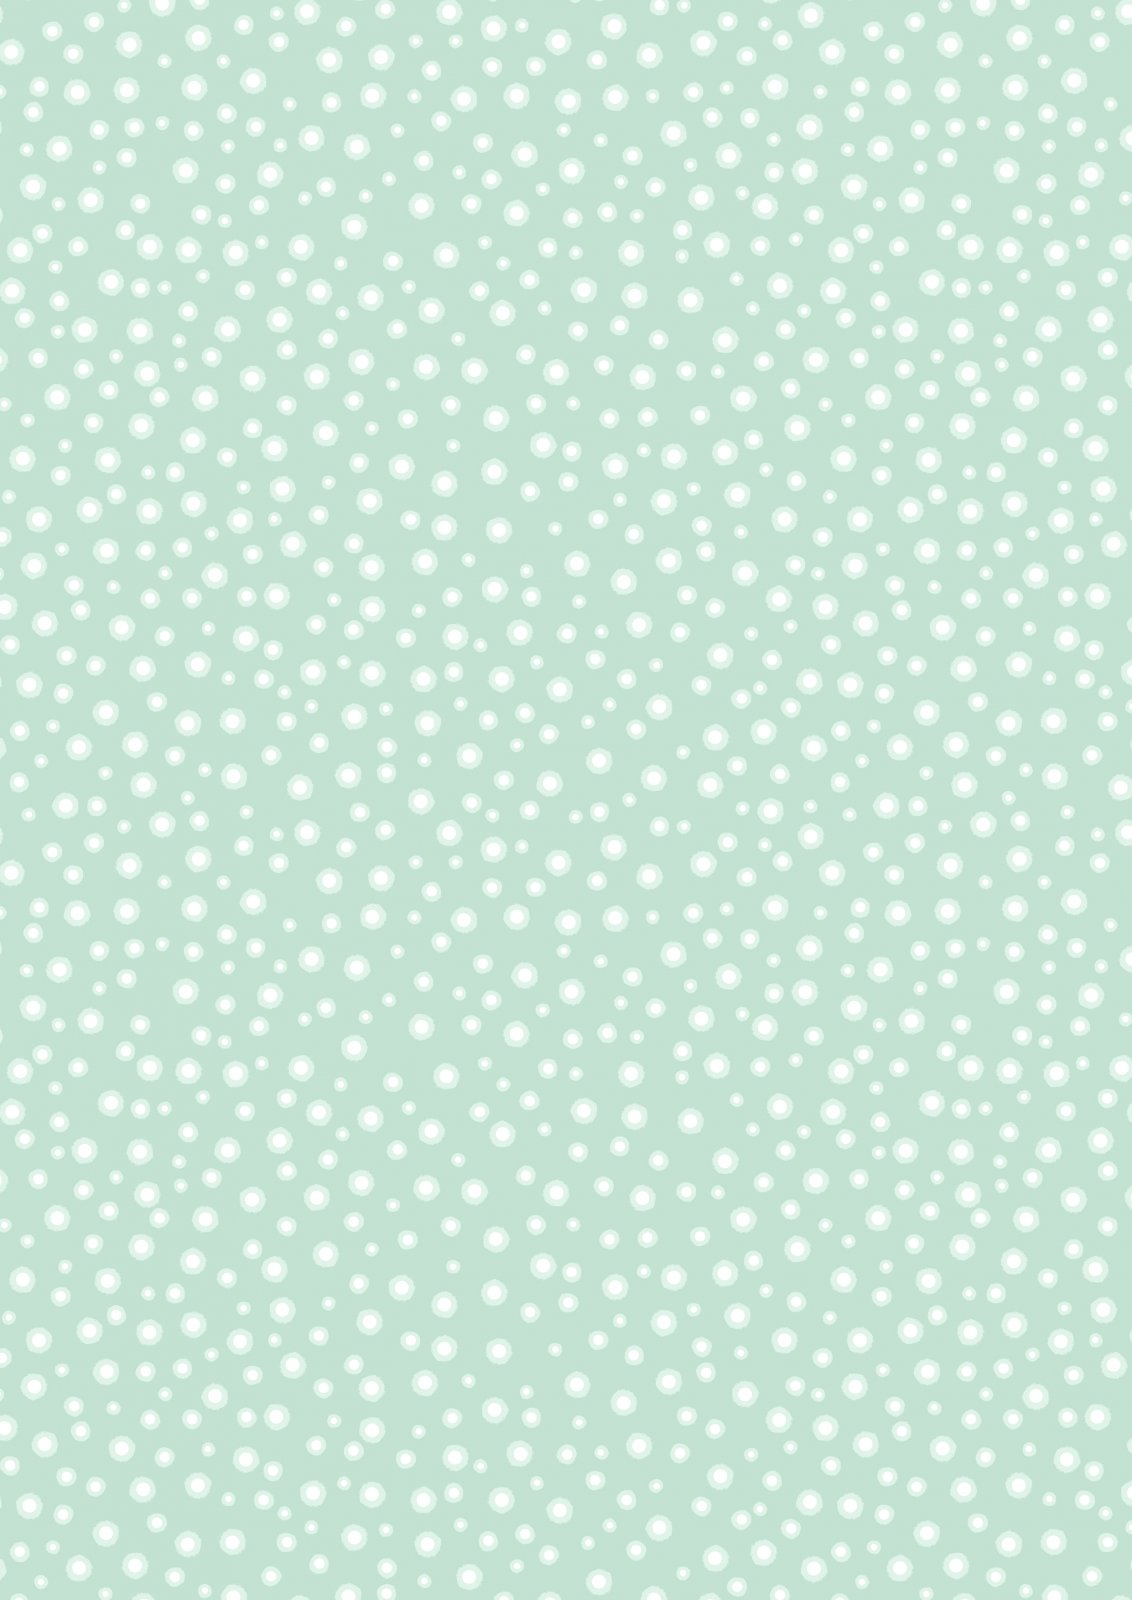 Glow in the Dark Dots on Mint Green